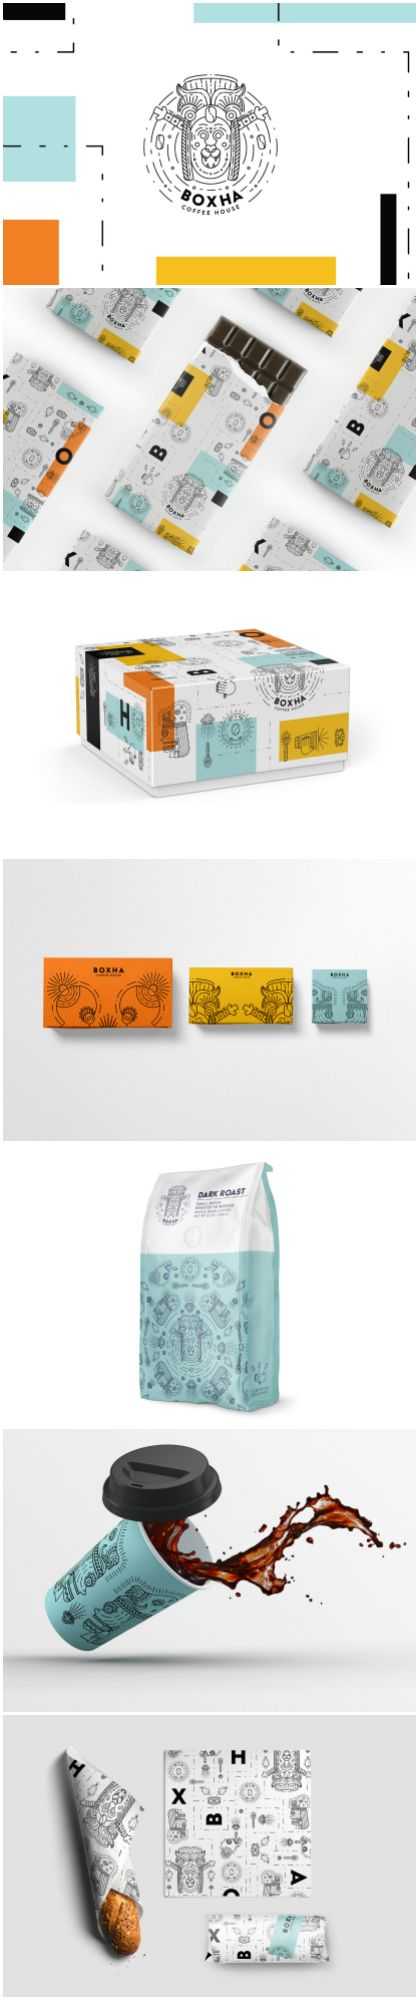 Mexican Coffee House Embracing Ancient Illustrations for their Coffee Packaging Design Design Agency: Eme Design Studio Brand / Project Name: Boxha Coffee House Location: United States America Category: #Coffee #Beverages #Drinks World Brand & Packaging Design Society